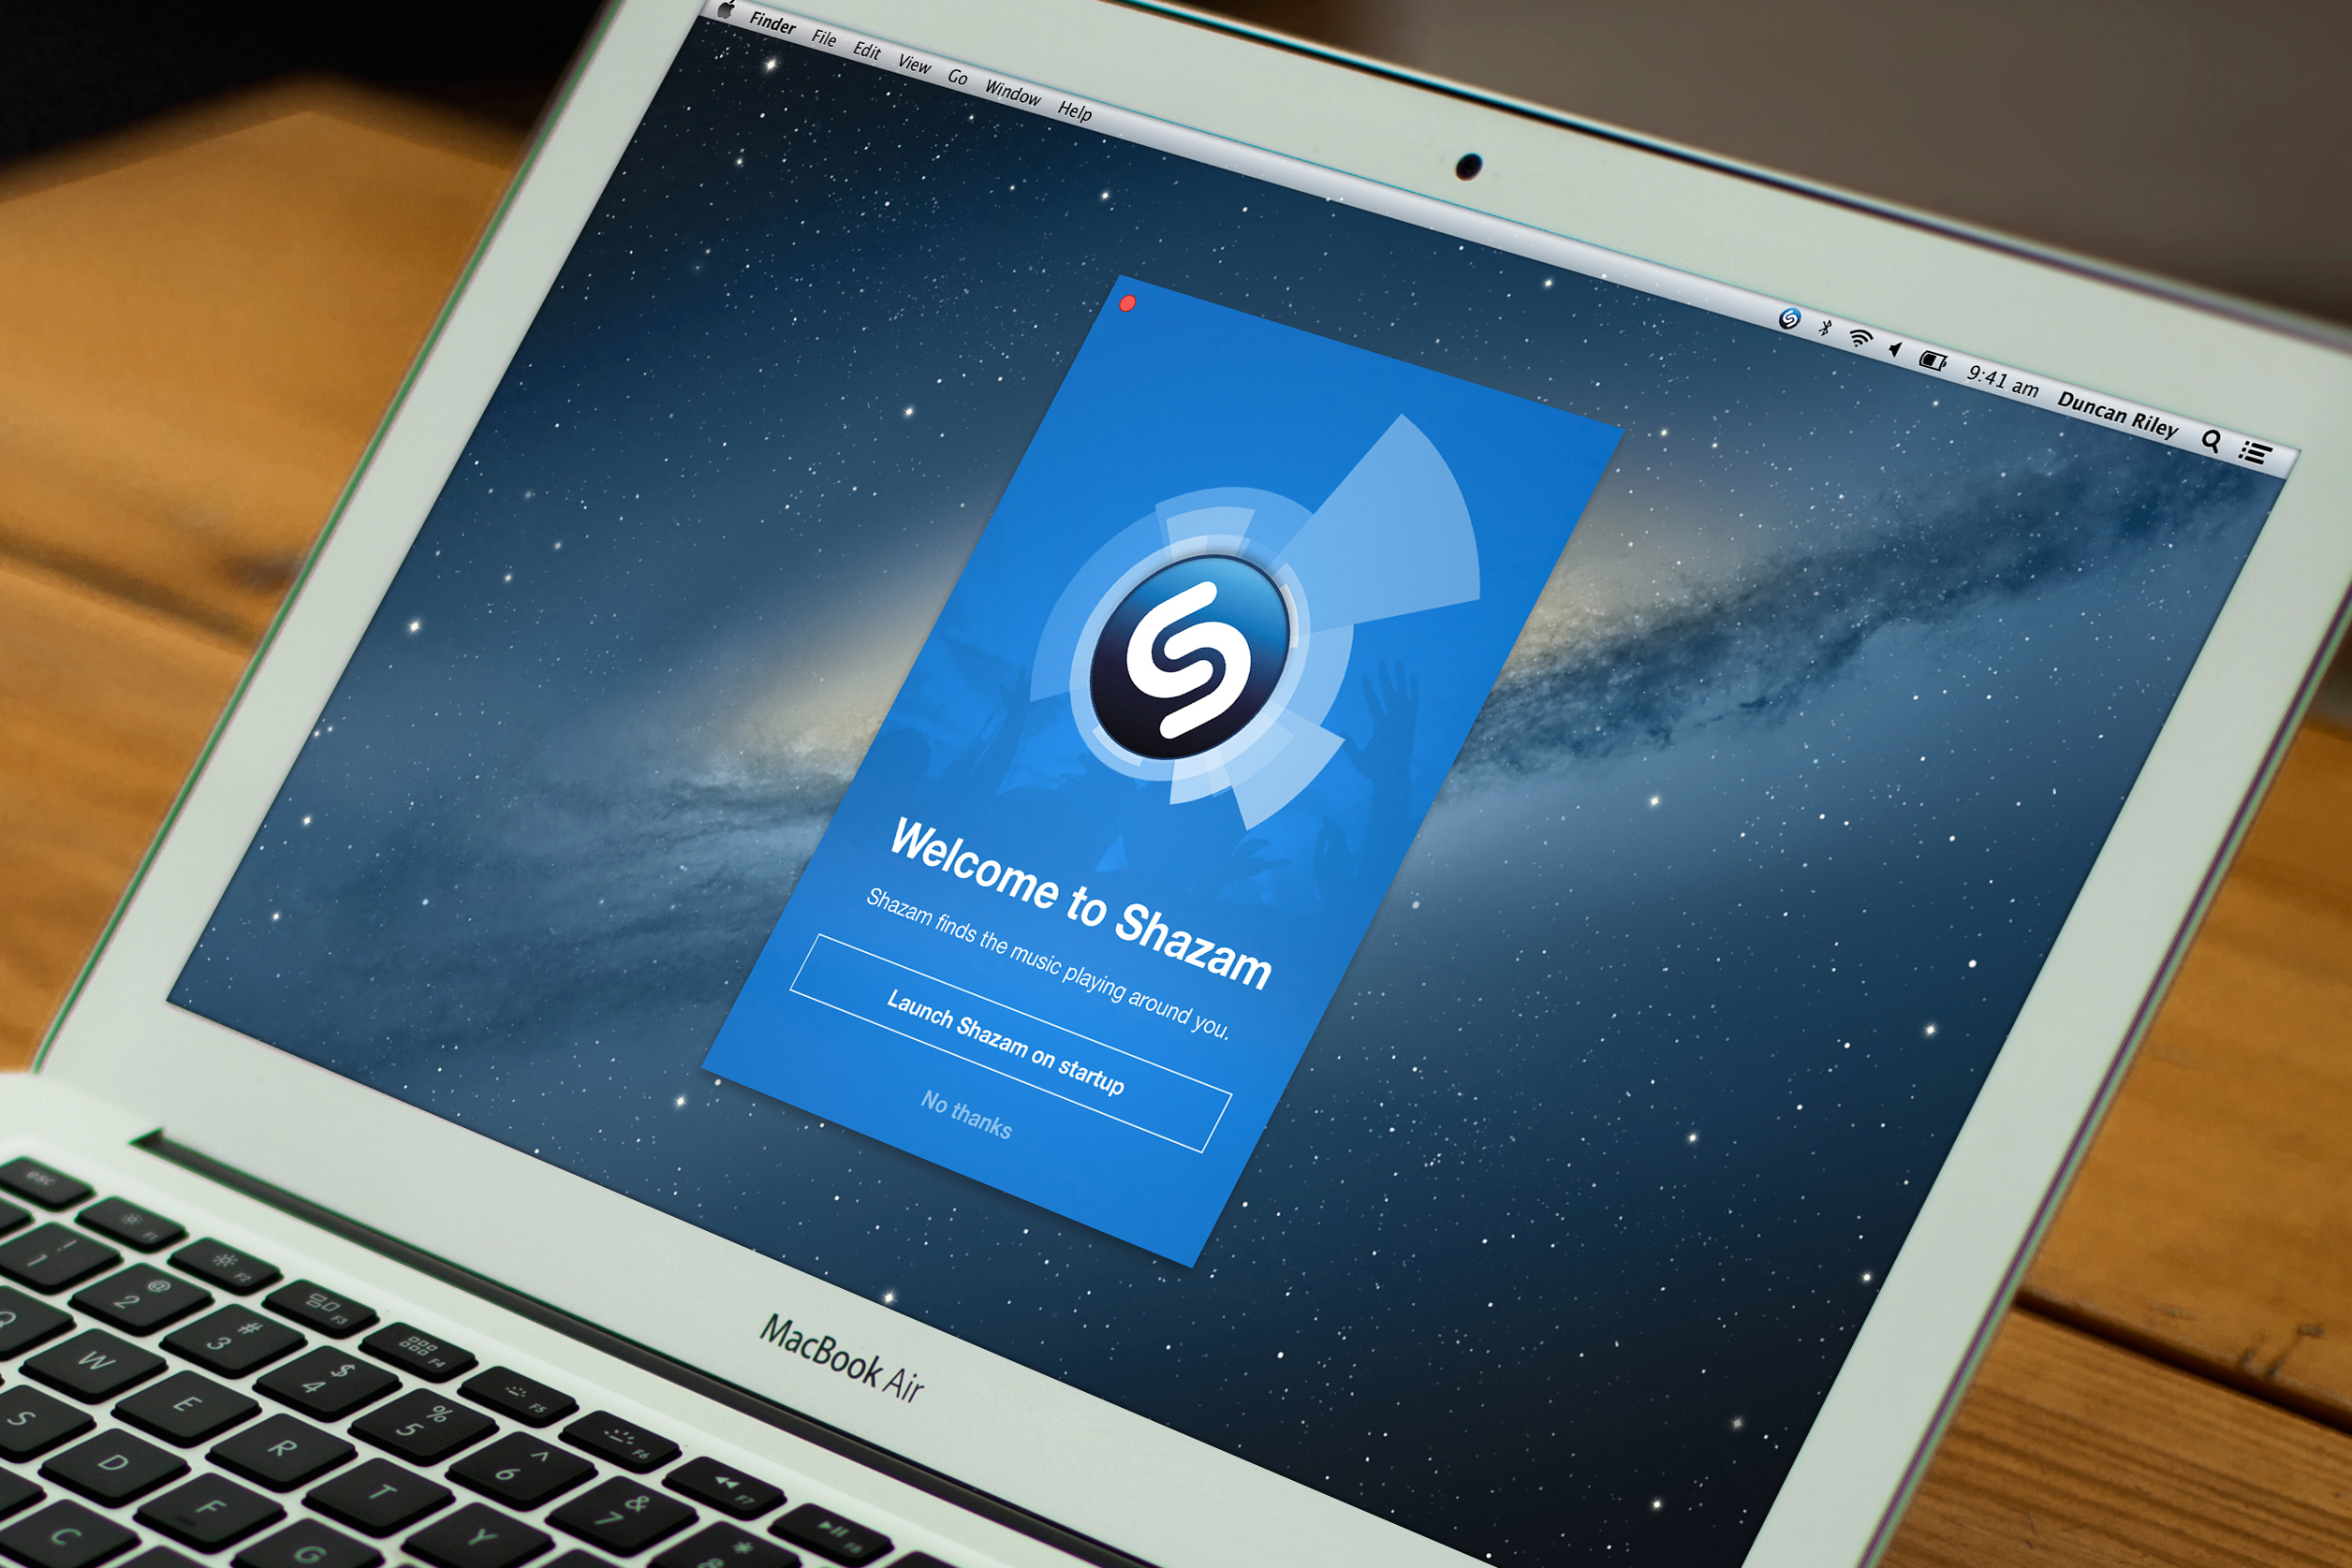 """""""Shazam on mobile instantaneously answers fans' questions about what's playing around them, at the touch of a button. The magic of Shazam for Mac, is that it anticipates and answers these questions before they're even asked,"""" said Shazam Chief Product Officer Daniel Danker."""